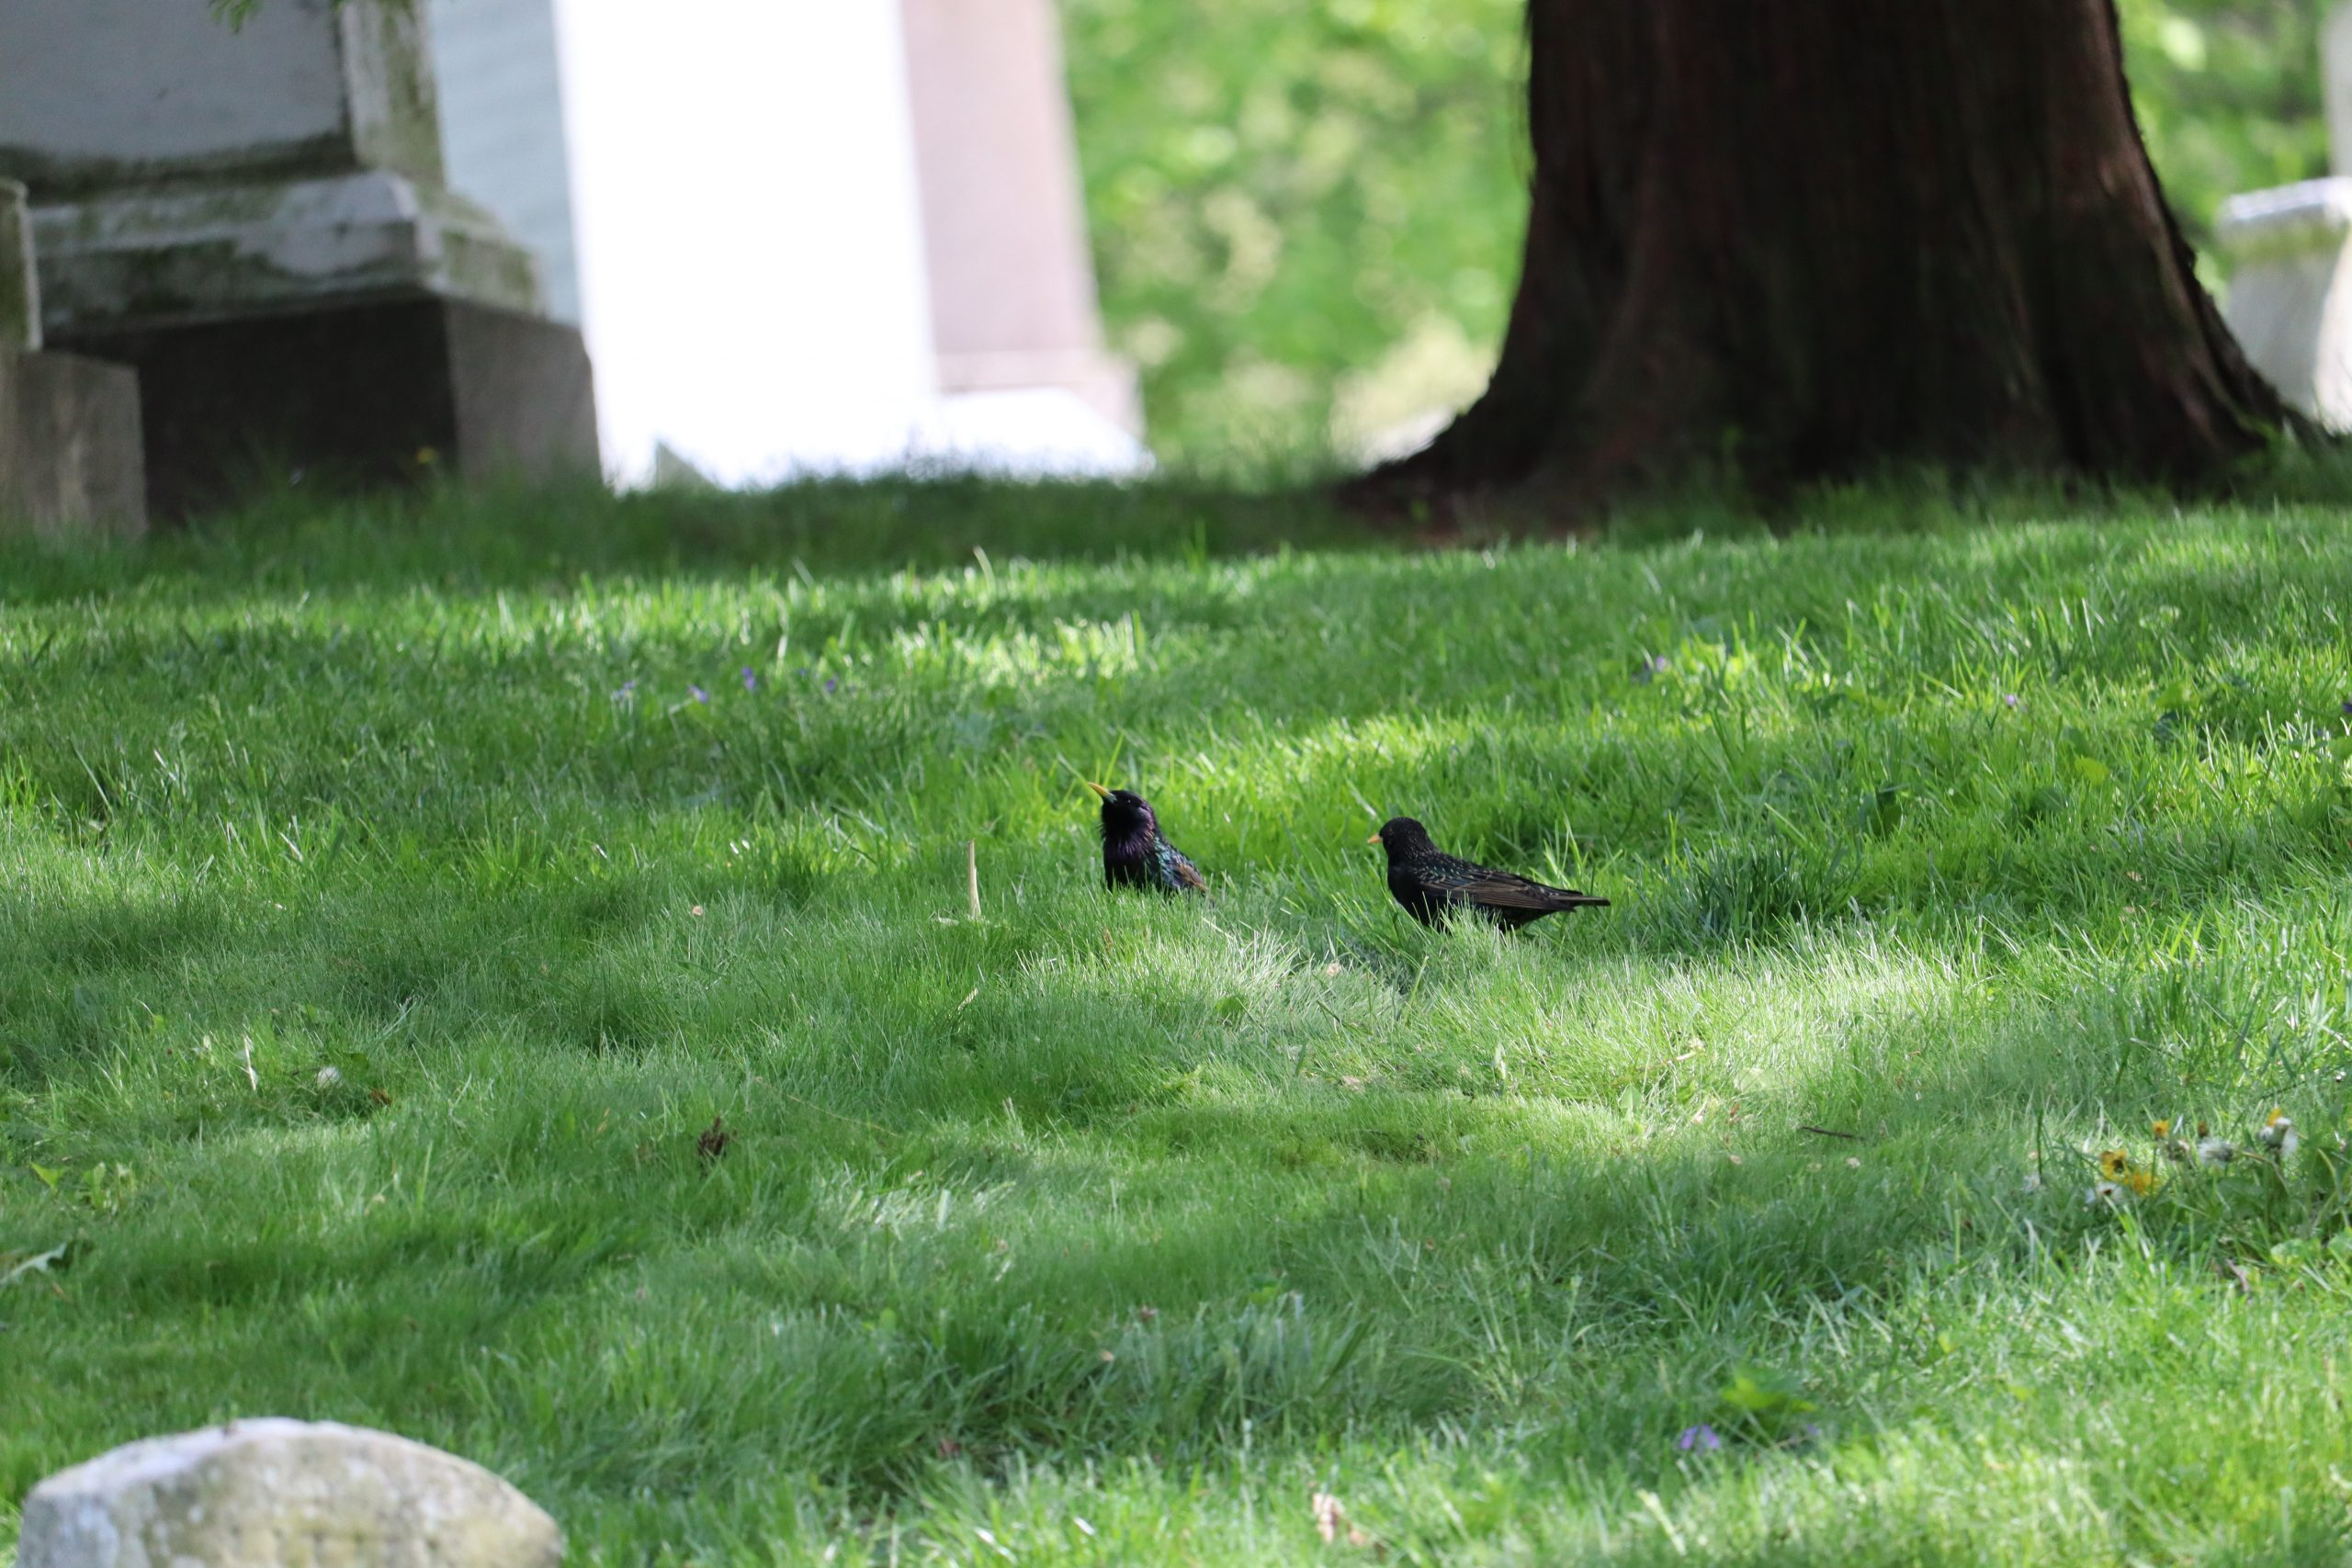 While the birds were mostly American Robins, I did spot a number of European Starlings at Green-Wood on my visit.